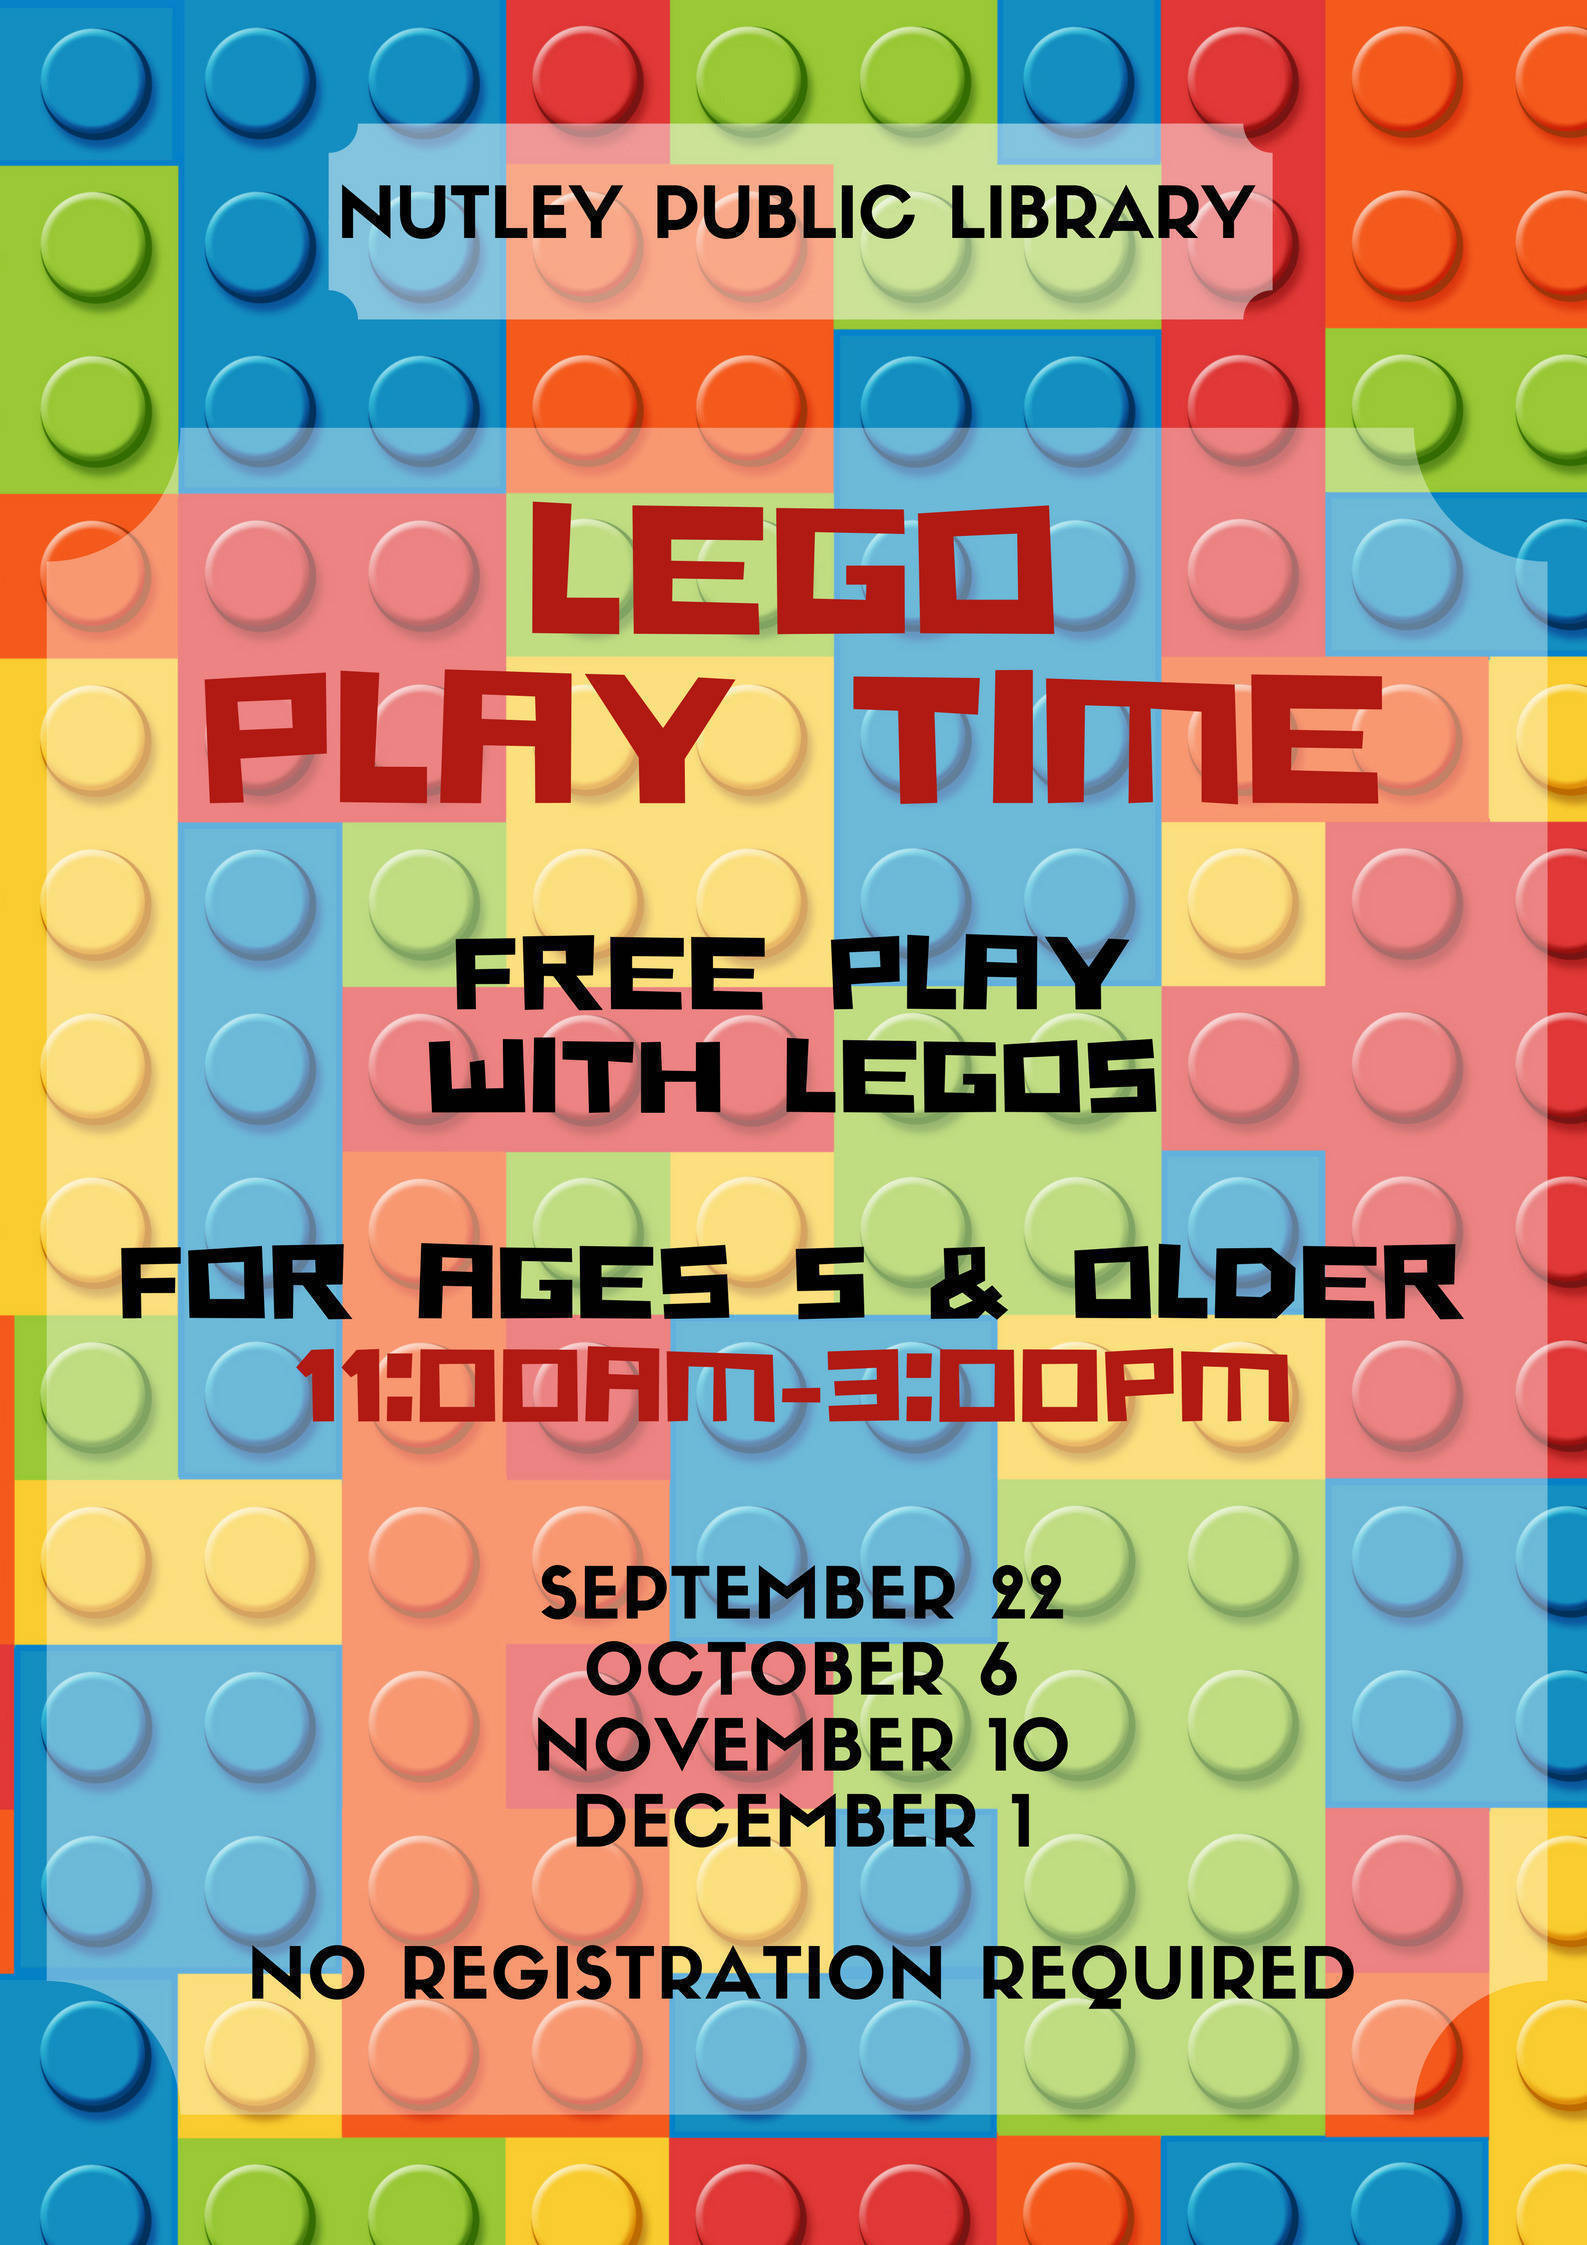 LEGO Play Time at Nutley Public Library